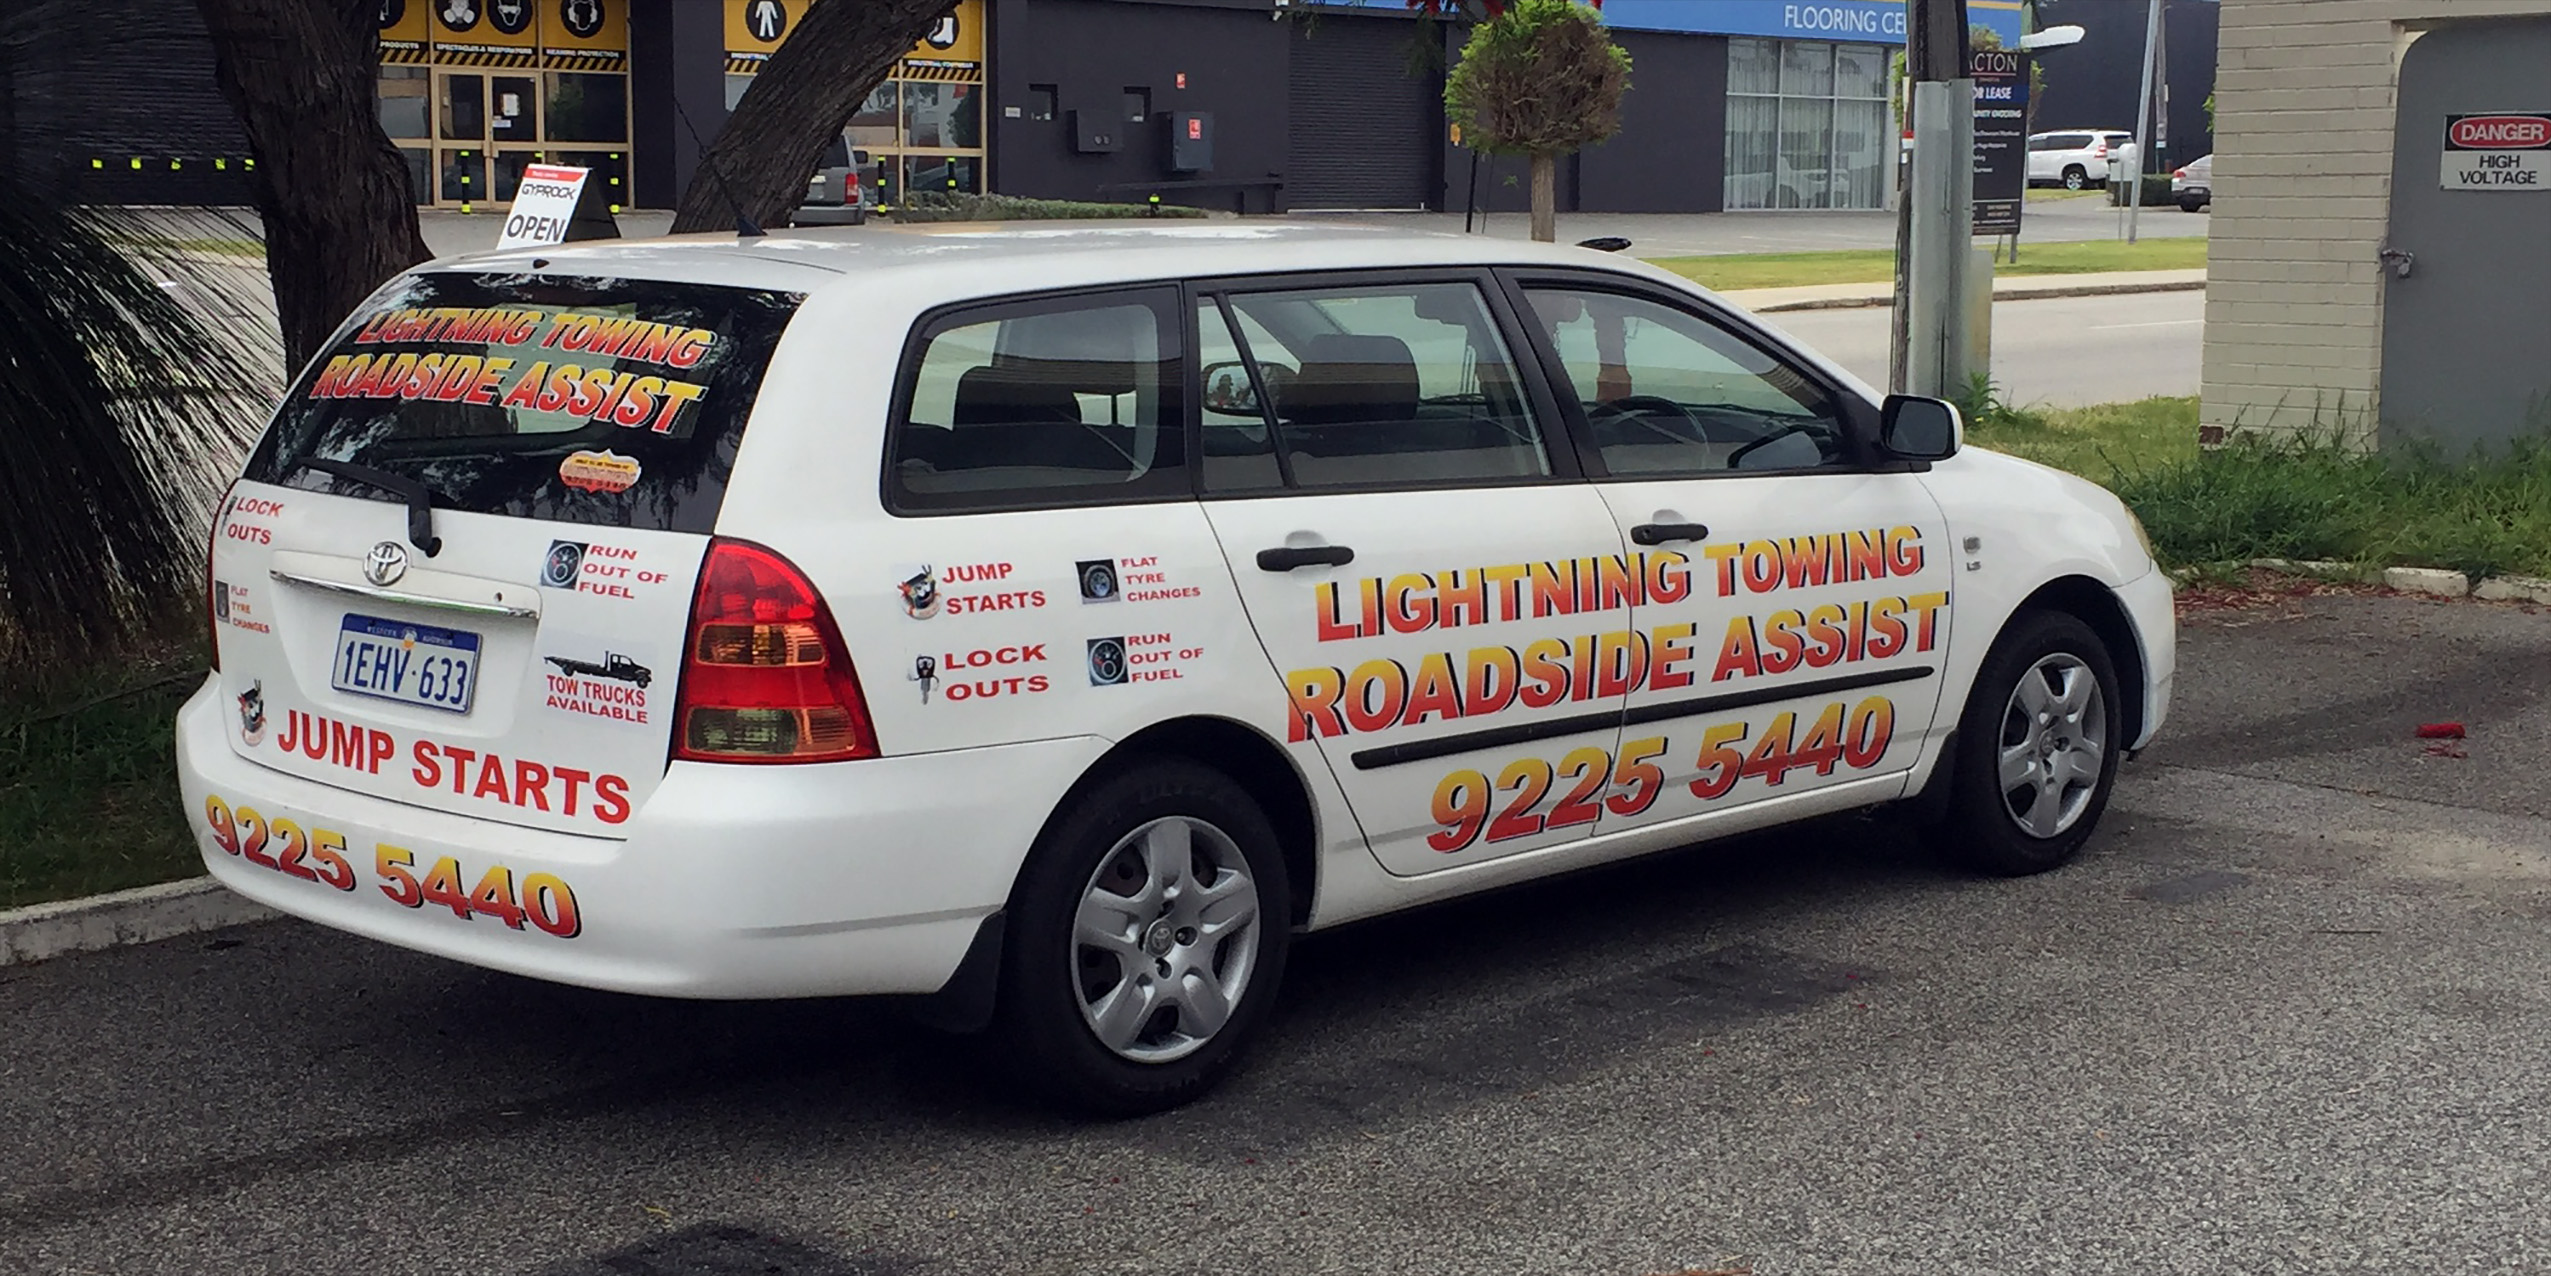 perth roadside assistance service